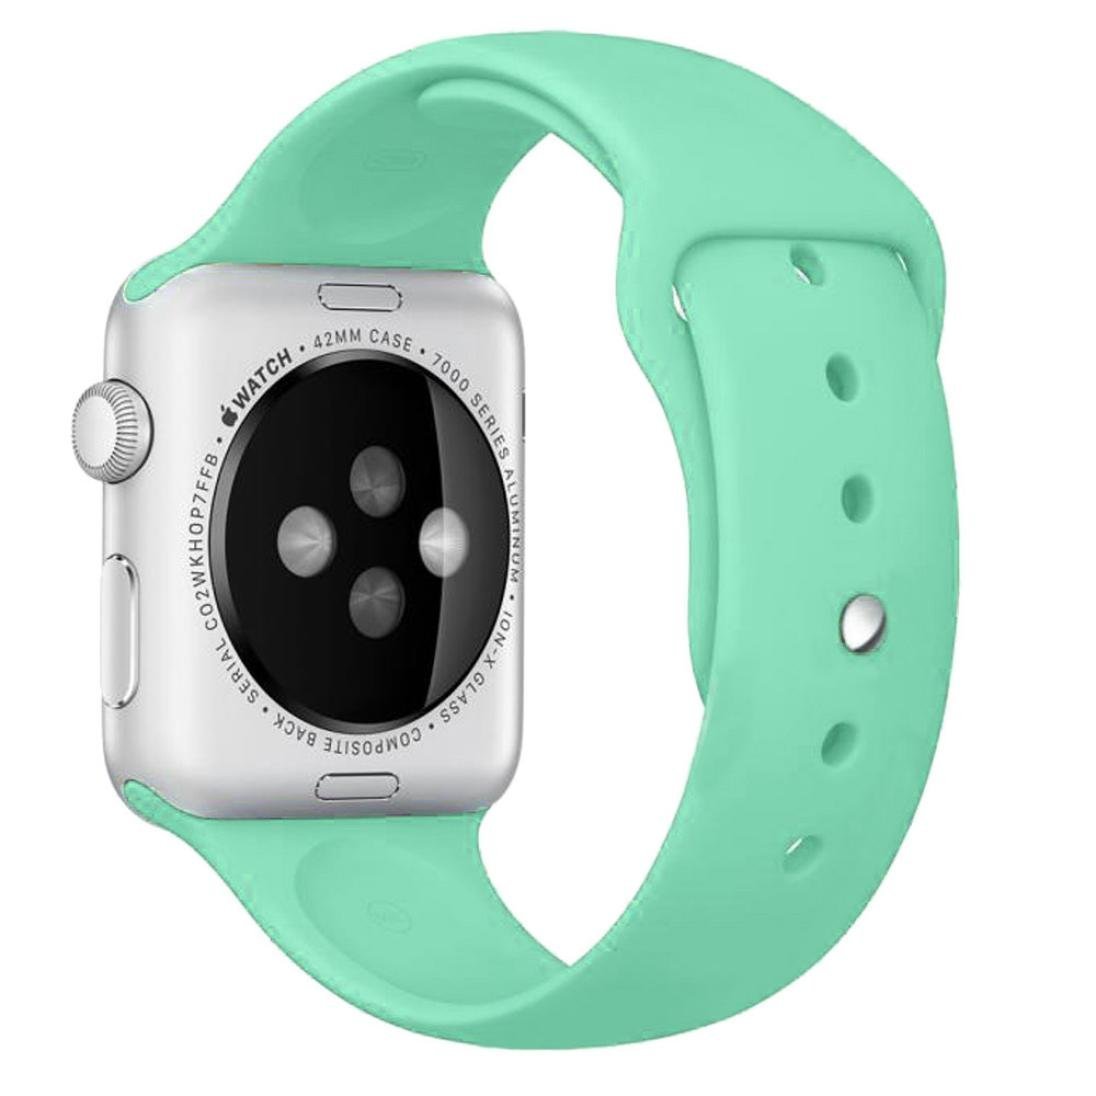 For Apple Watch Band , HP95(TM) Sports Silicone Bracelet Strap Band for Apple Watch 38mm/ 42mm all Model, Replacement, Adjustable Watch Band (42mm, Green)